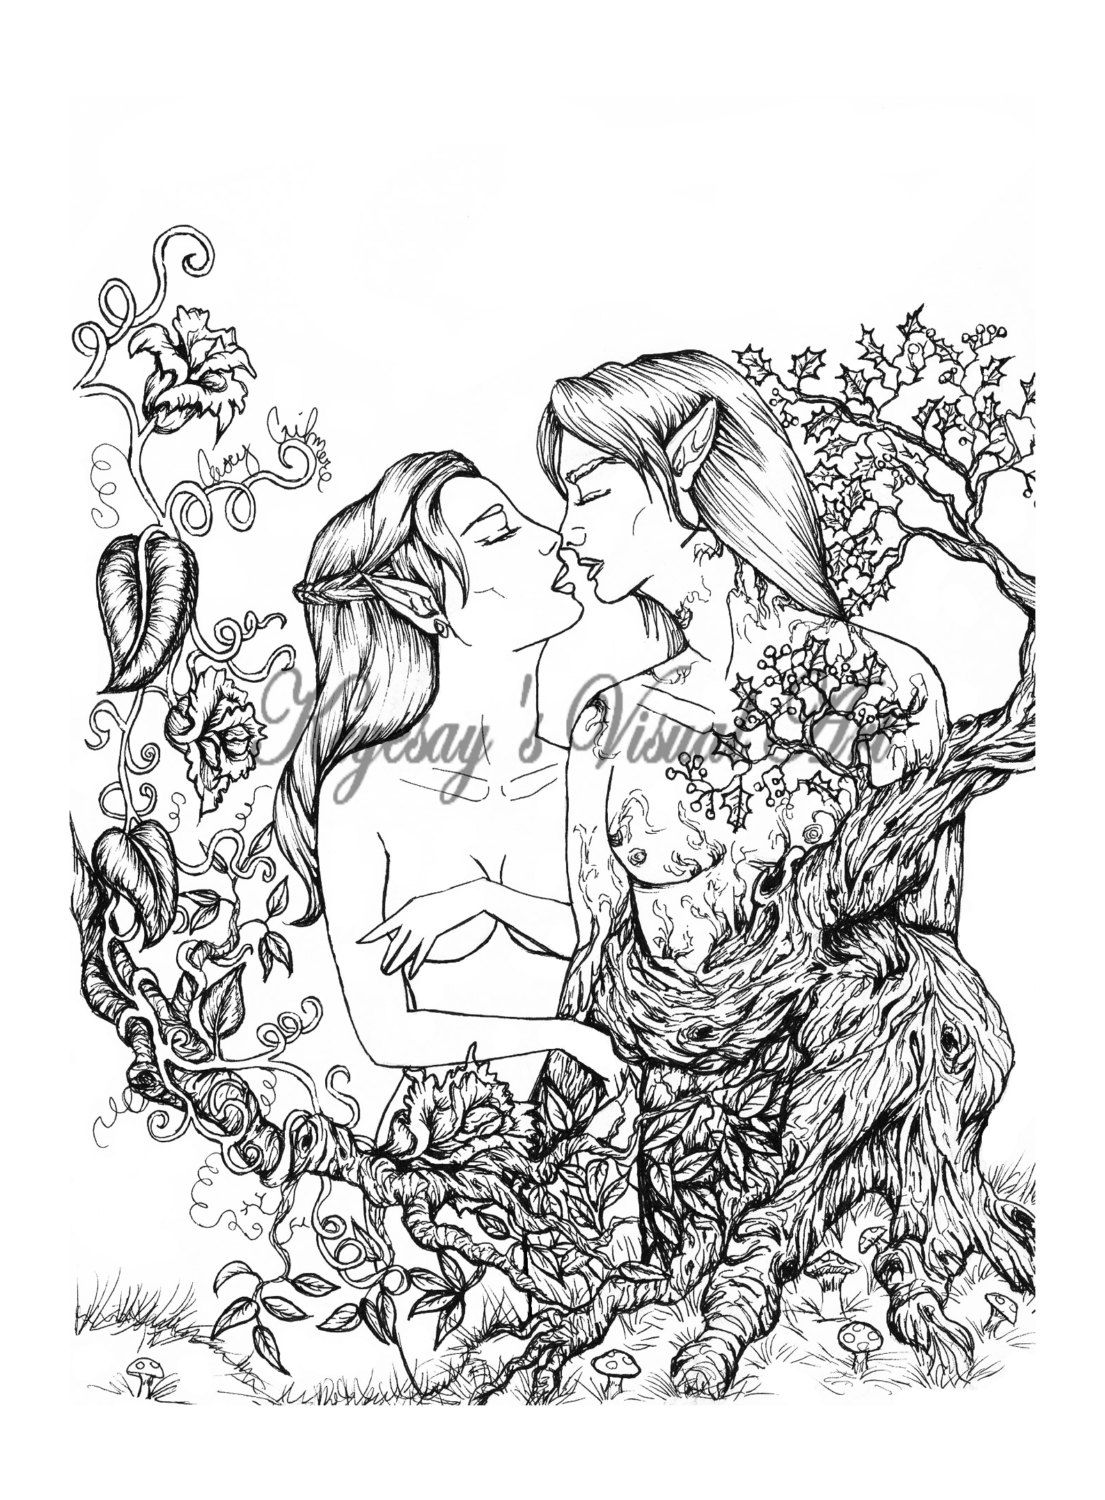 Adult fantasy coloring pages for kids and for adults